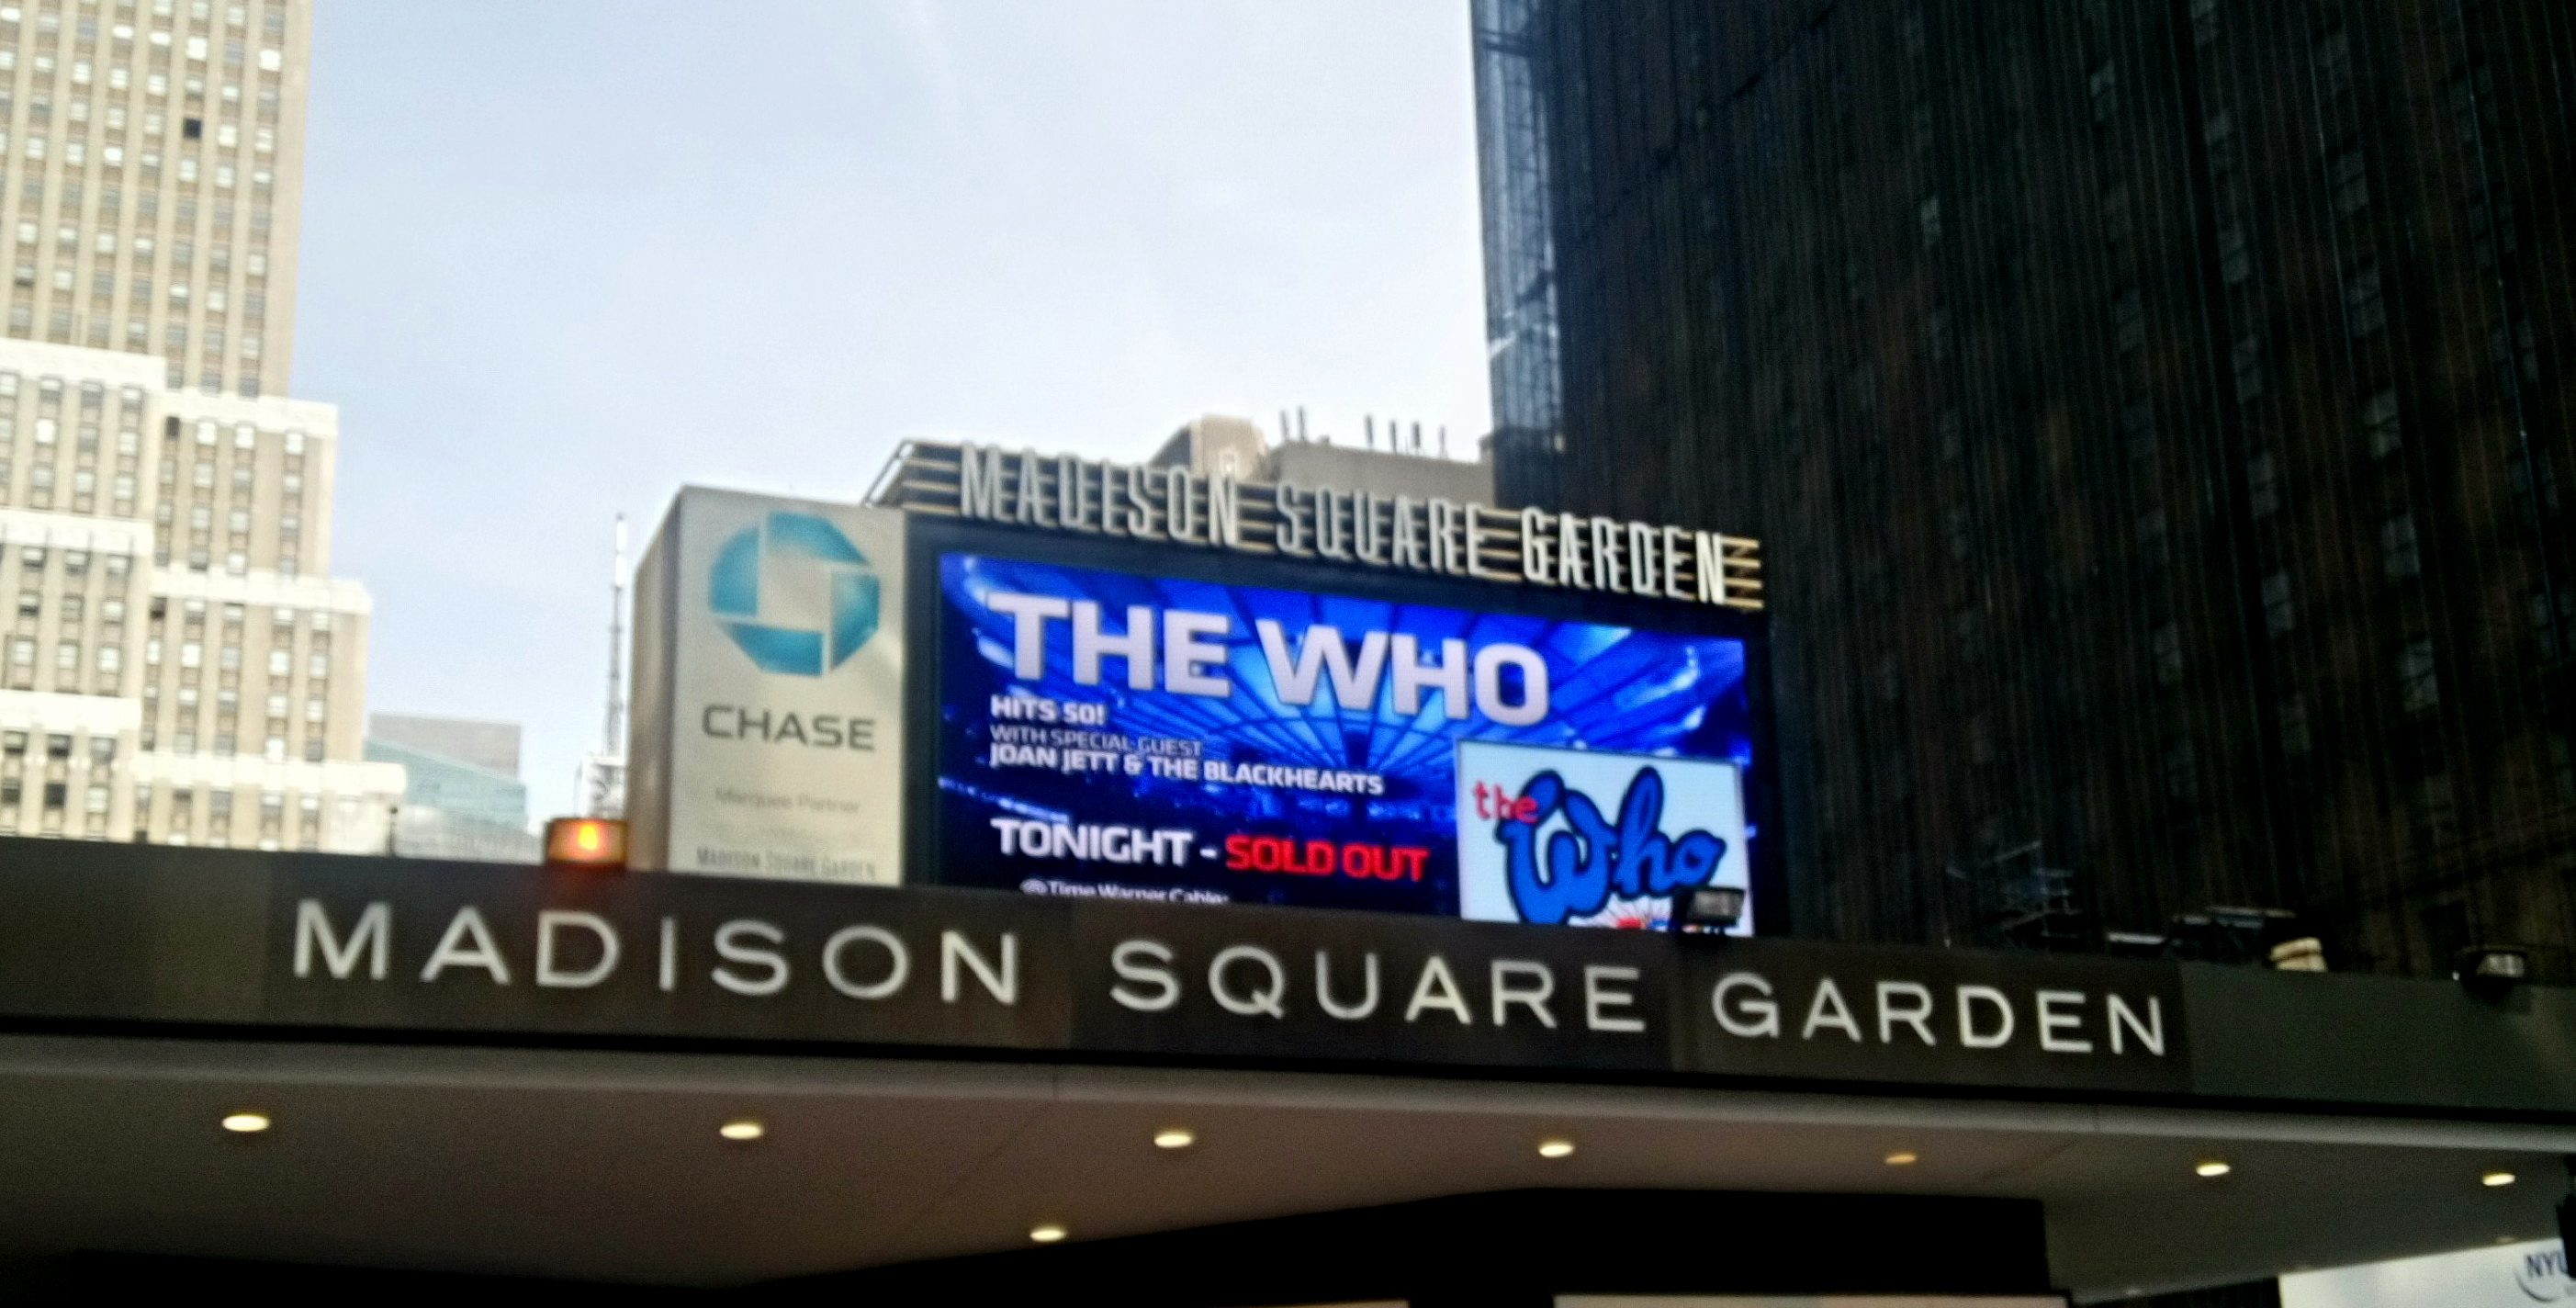 Mar 3 2016 New York City Madison Square Garden The Who